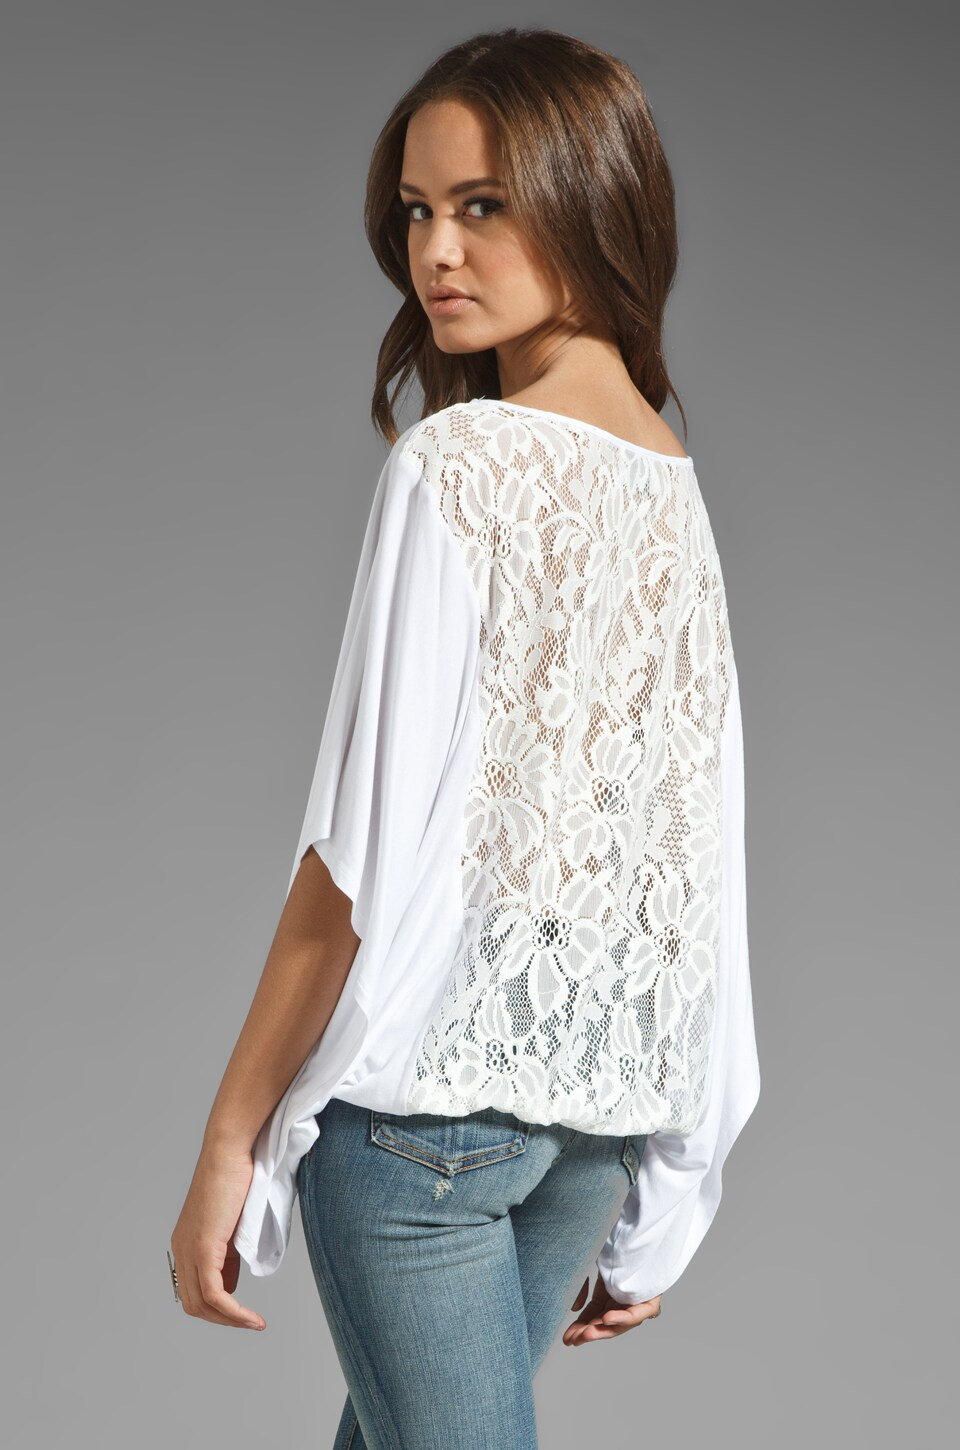 VAVA by Joy Han Skyler Lace Back Top in White